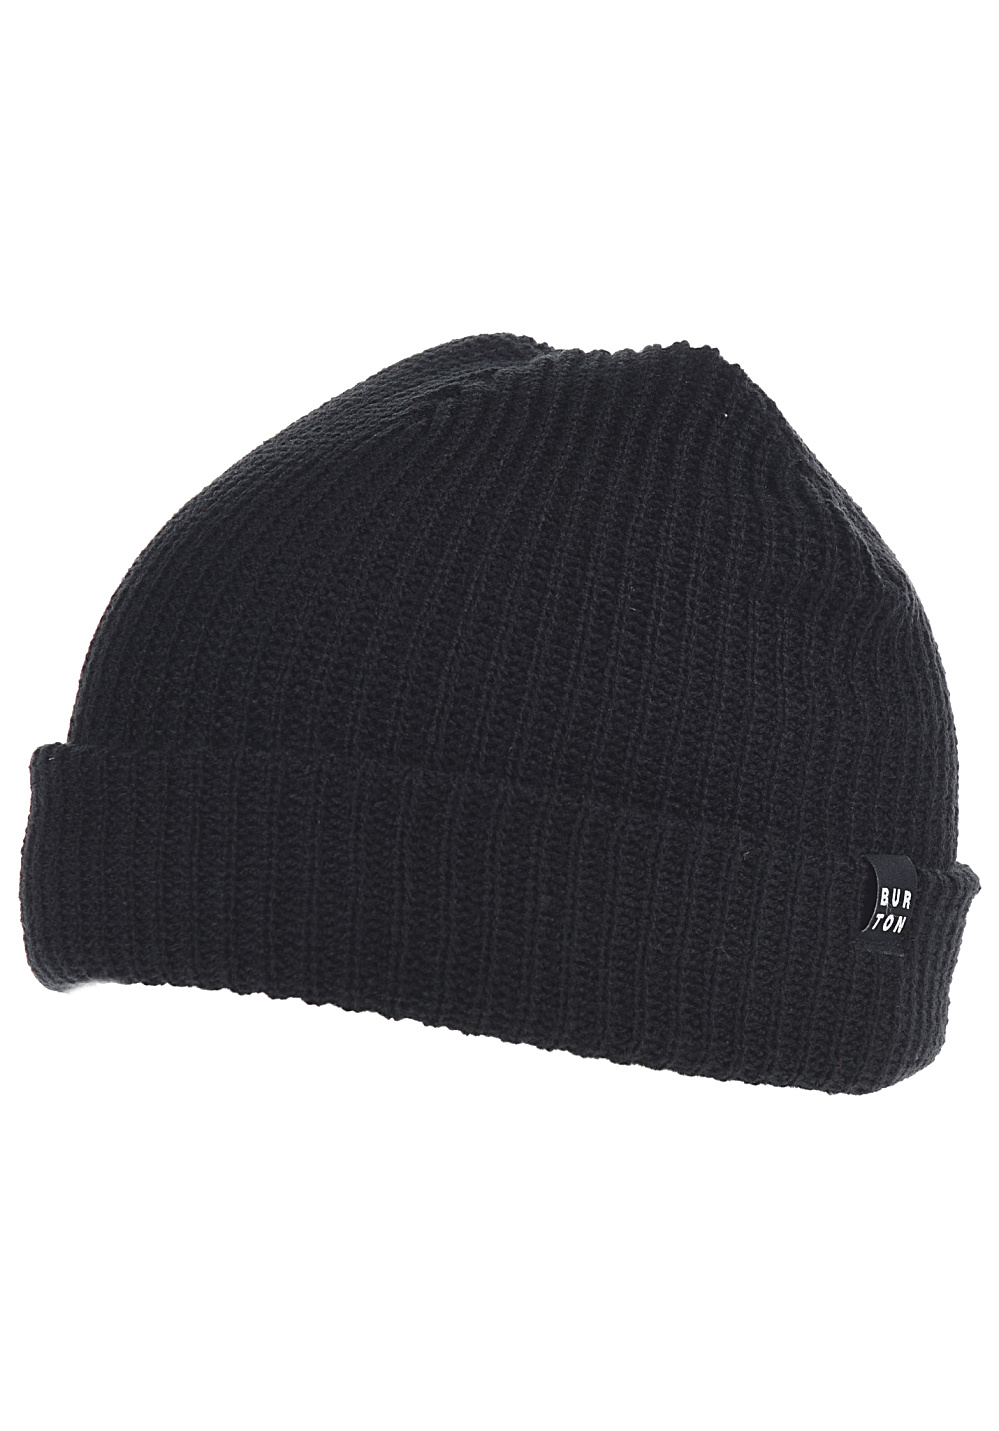 51c43c14068 ... Beanies · Burton All Day Long - Beanie for Men - Black. Back to  Overview. 1  2  3. Previous